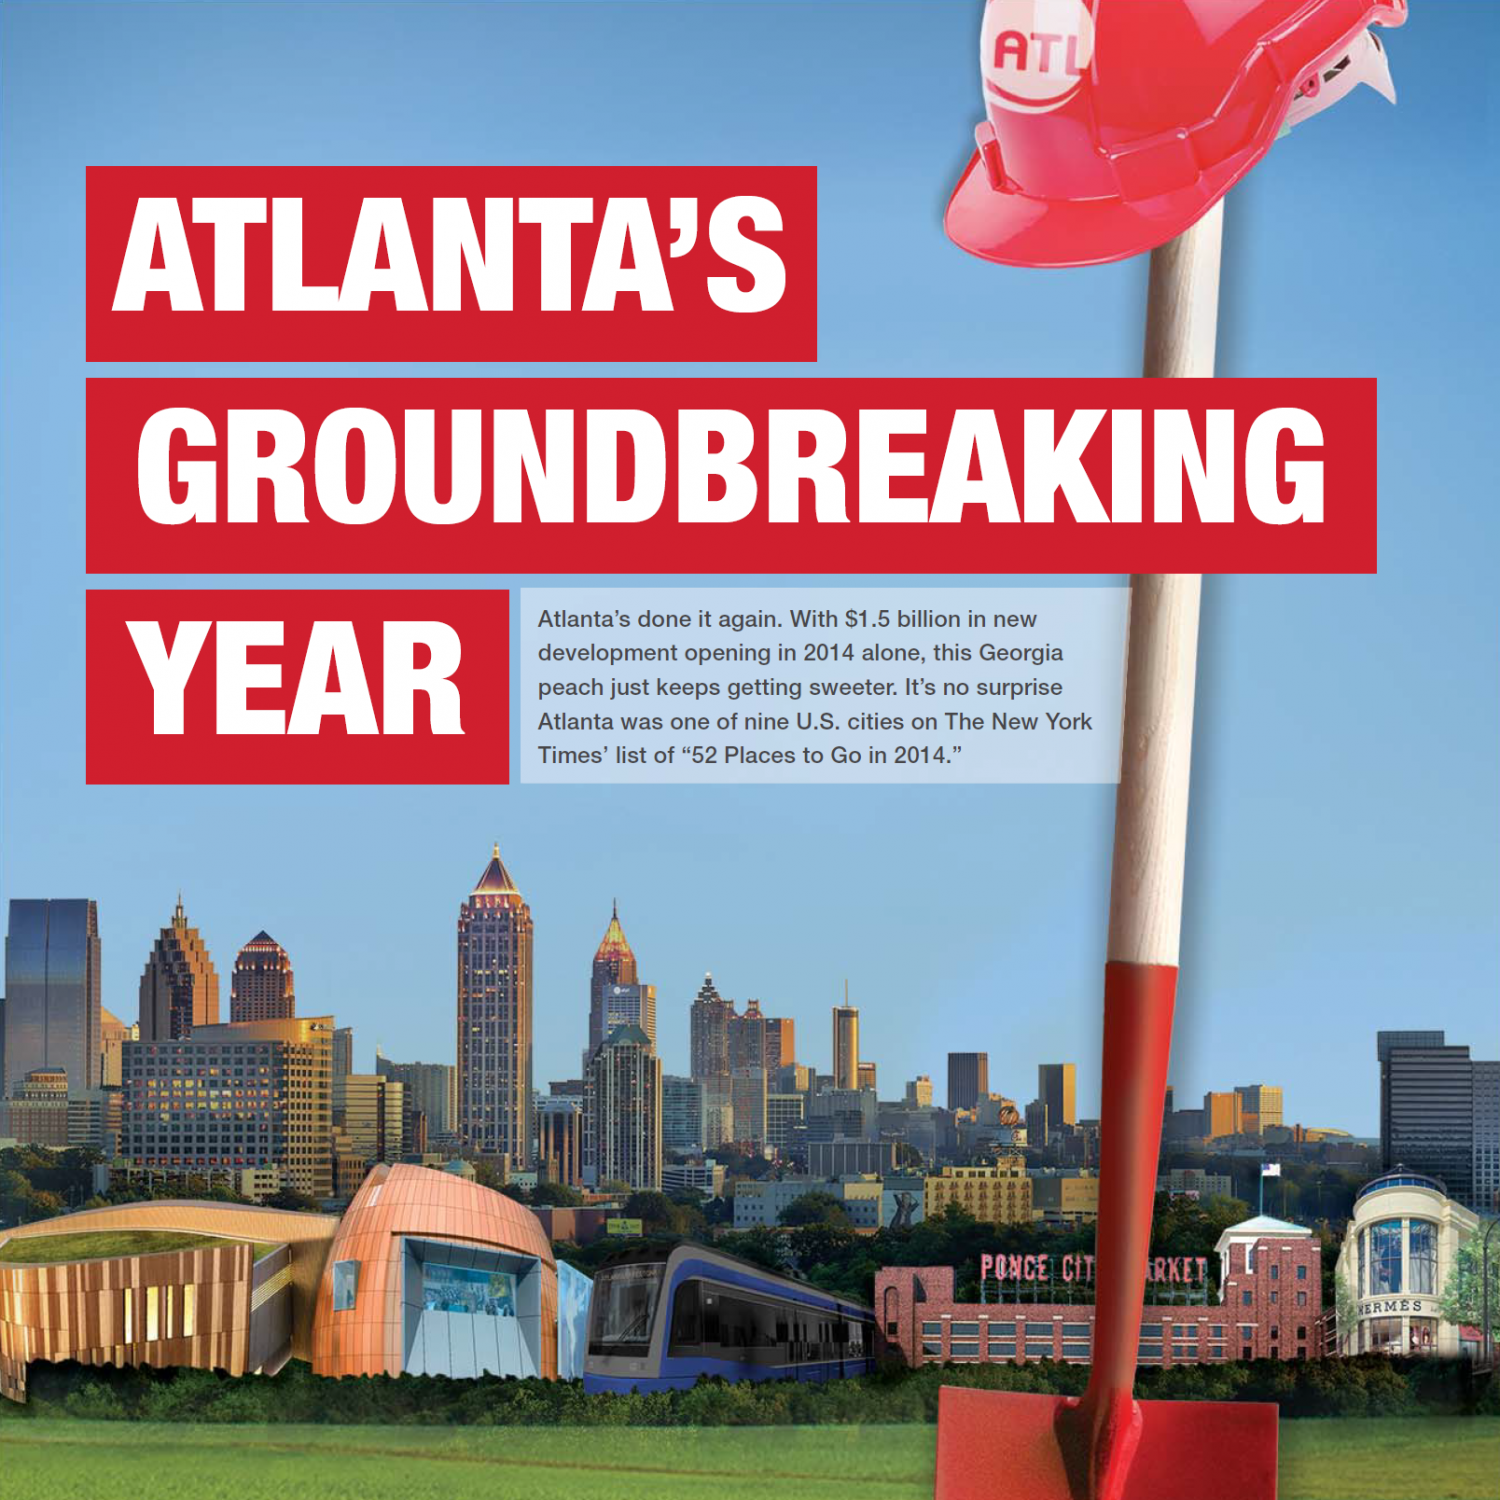 Atlanta's Groundbreaking Year Infographic